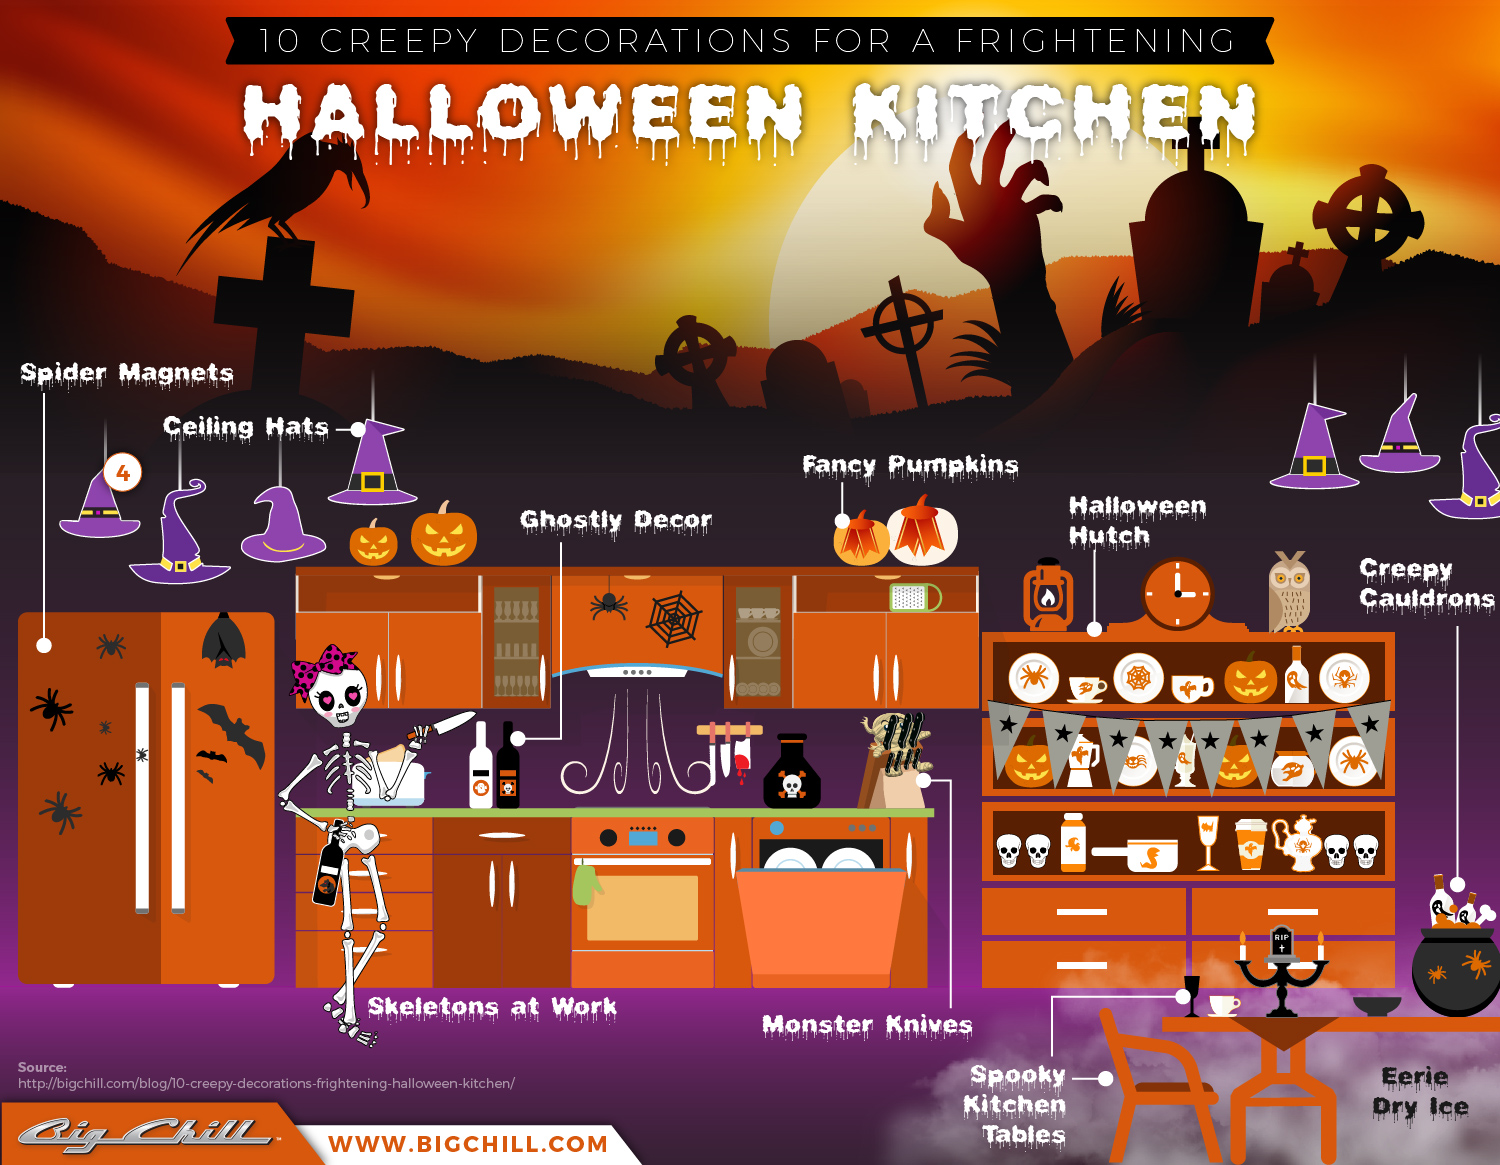 Creepy Decorations for a Frightening Halloween Kitchen